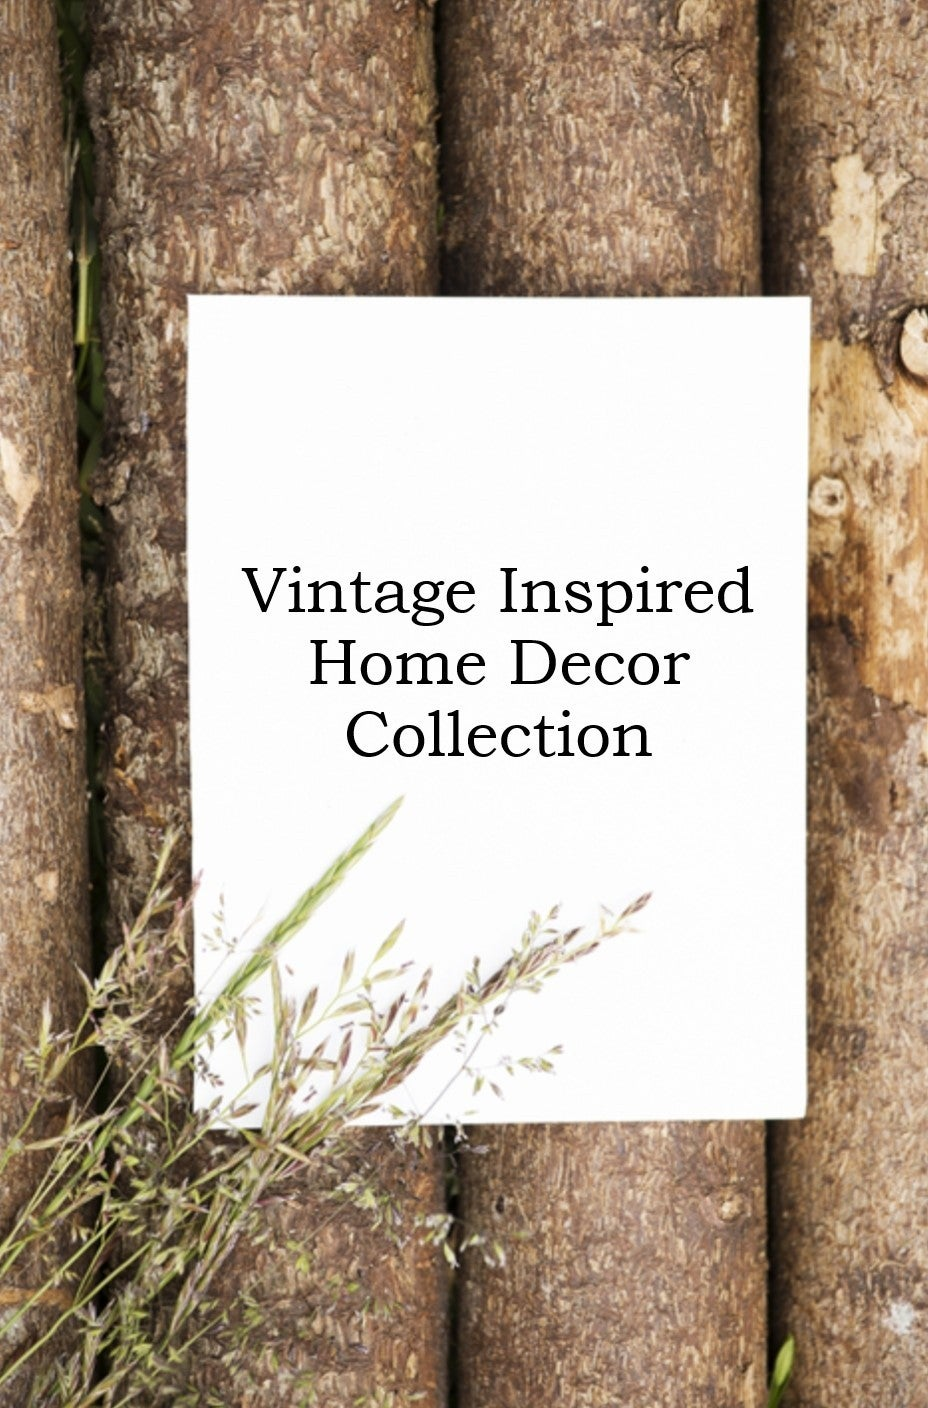 Vintage Inspired Home Decor Collection